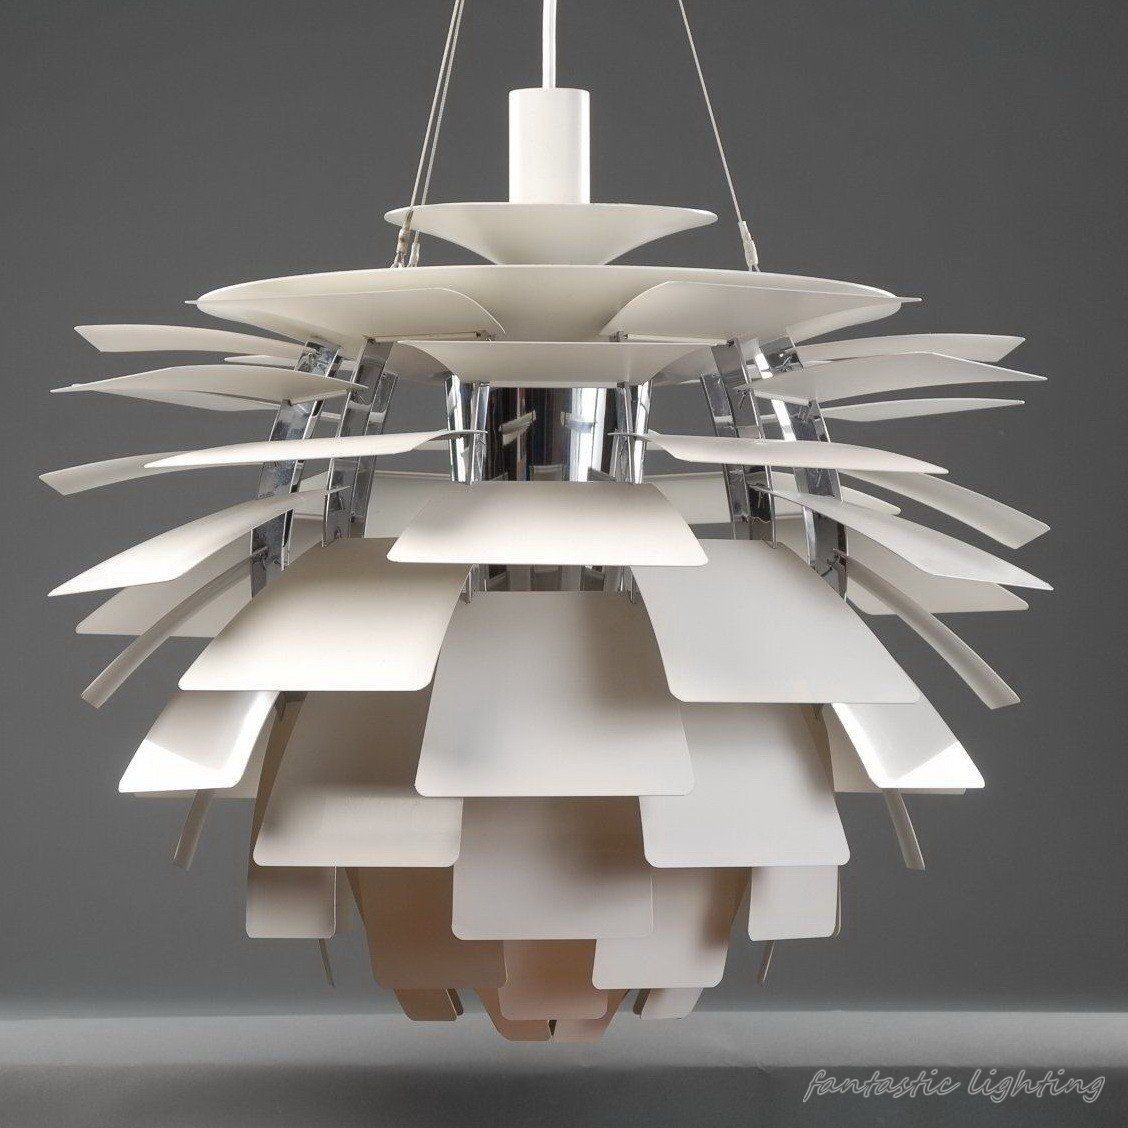 56cm free shipping poul henningsen ph artichoke ceiling light the ph artichoke pendant is considered to be a classical masterpiece made by poul henningsen more than 40 years ago mozeypictures Images